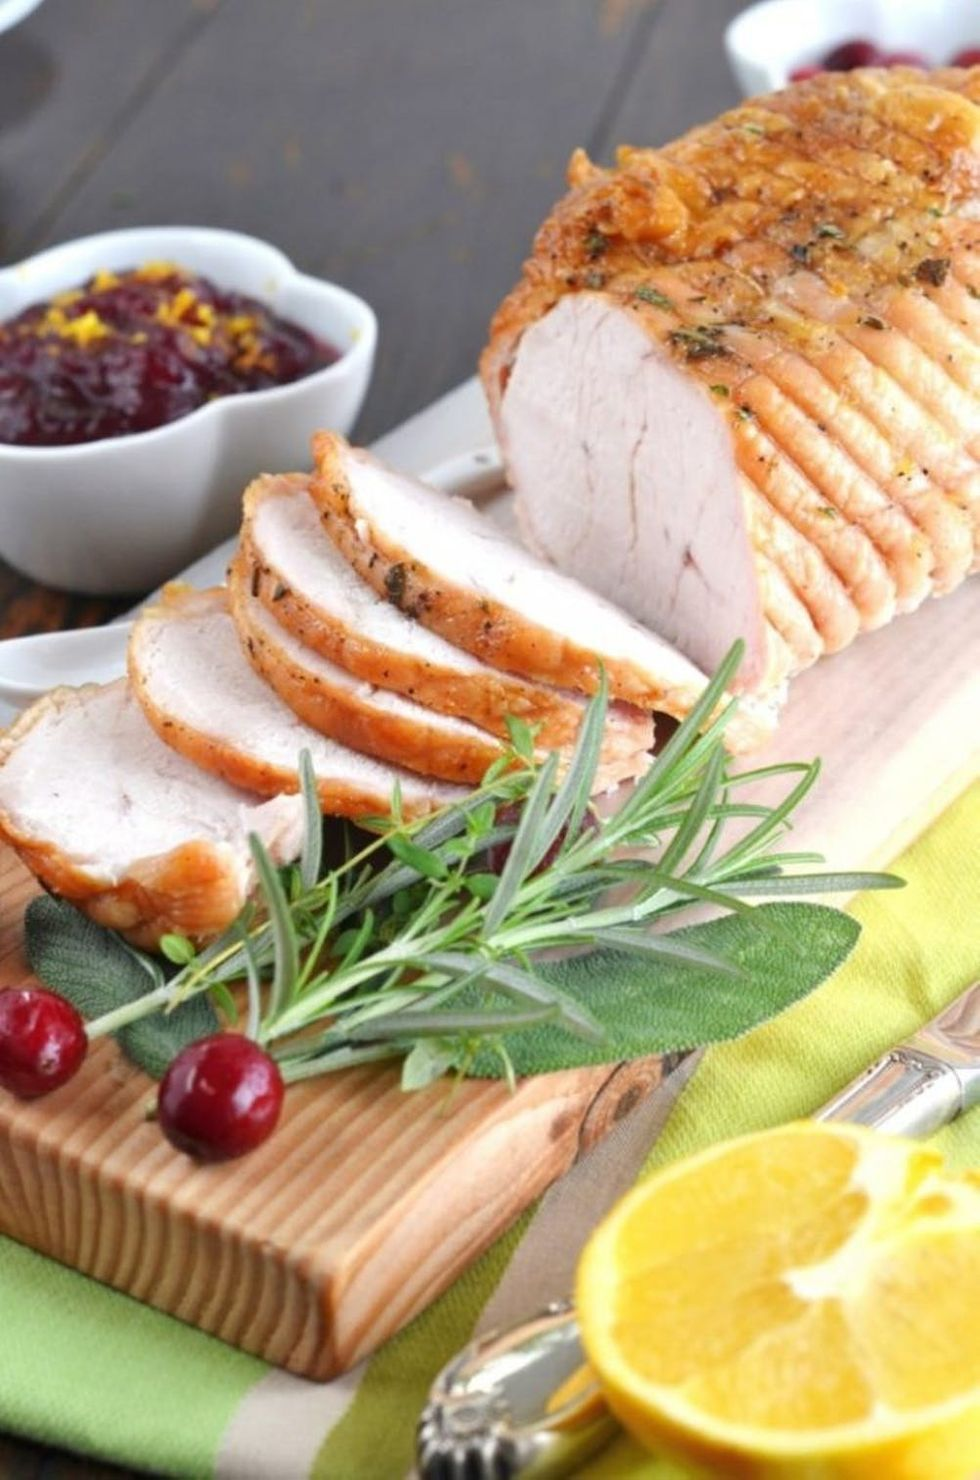 19 Easy Friendsgiving Recipes to Rock at Your Next Holiday Feast #friendsgivingfood